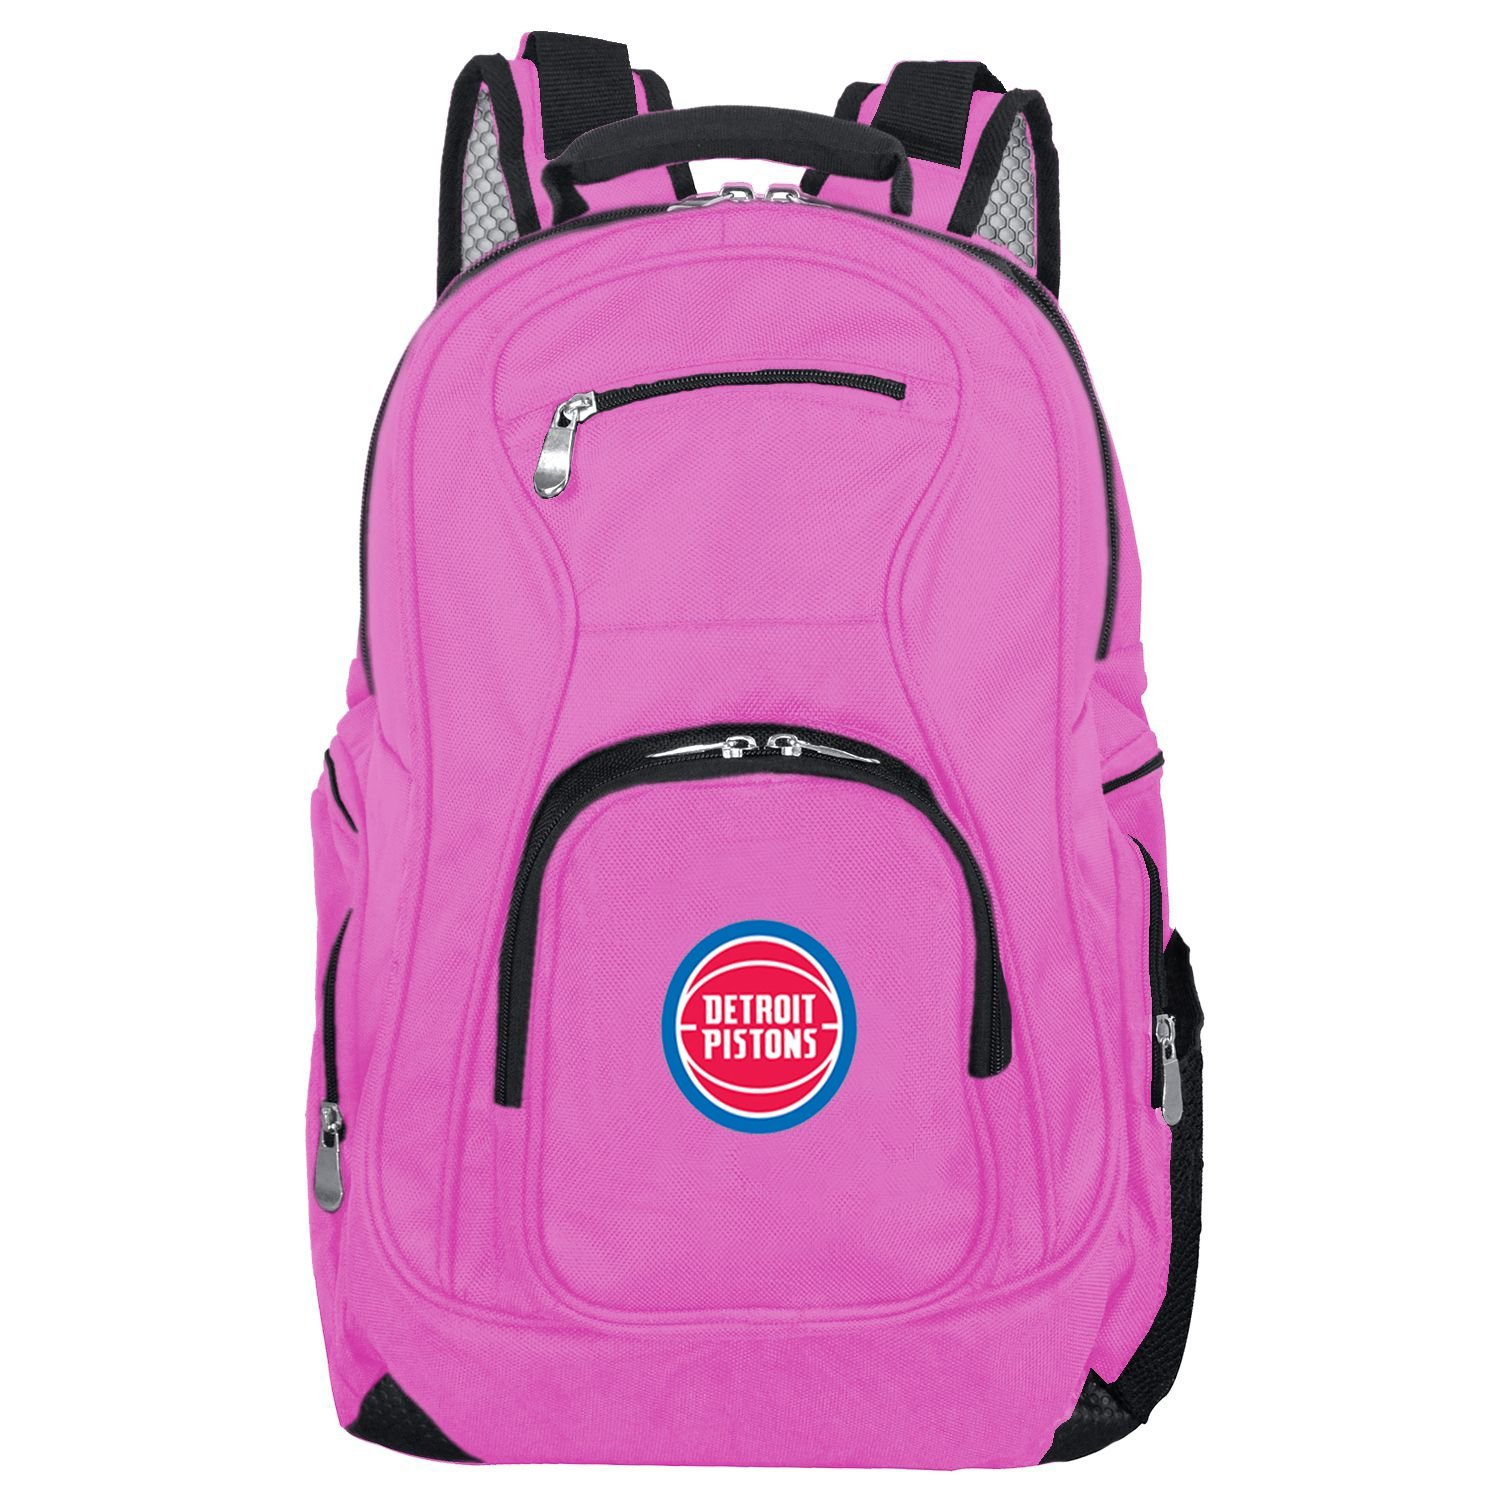 NBA Detroit Pistons Voyager Laptop Backpack, 19-inches, Pink